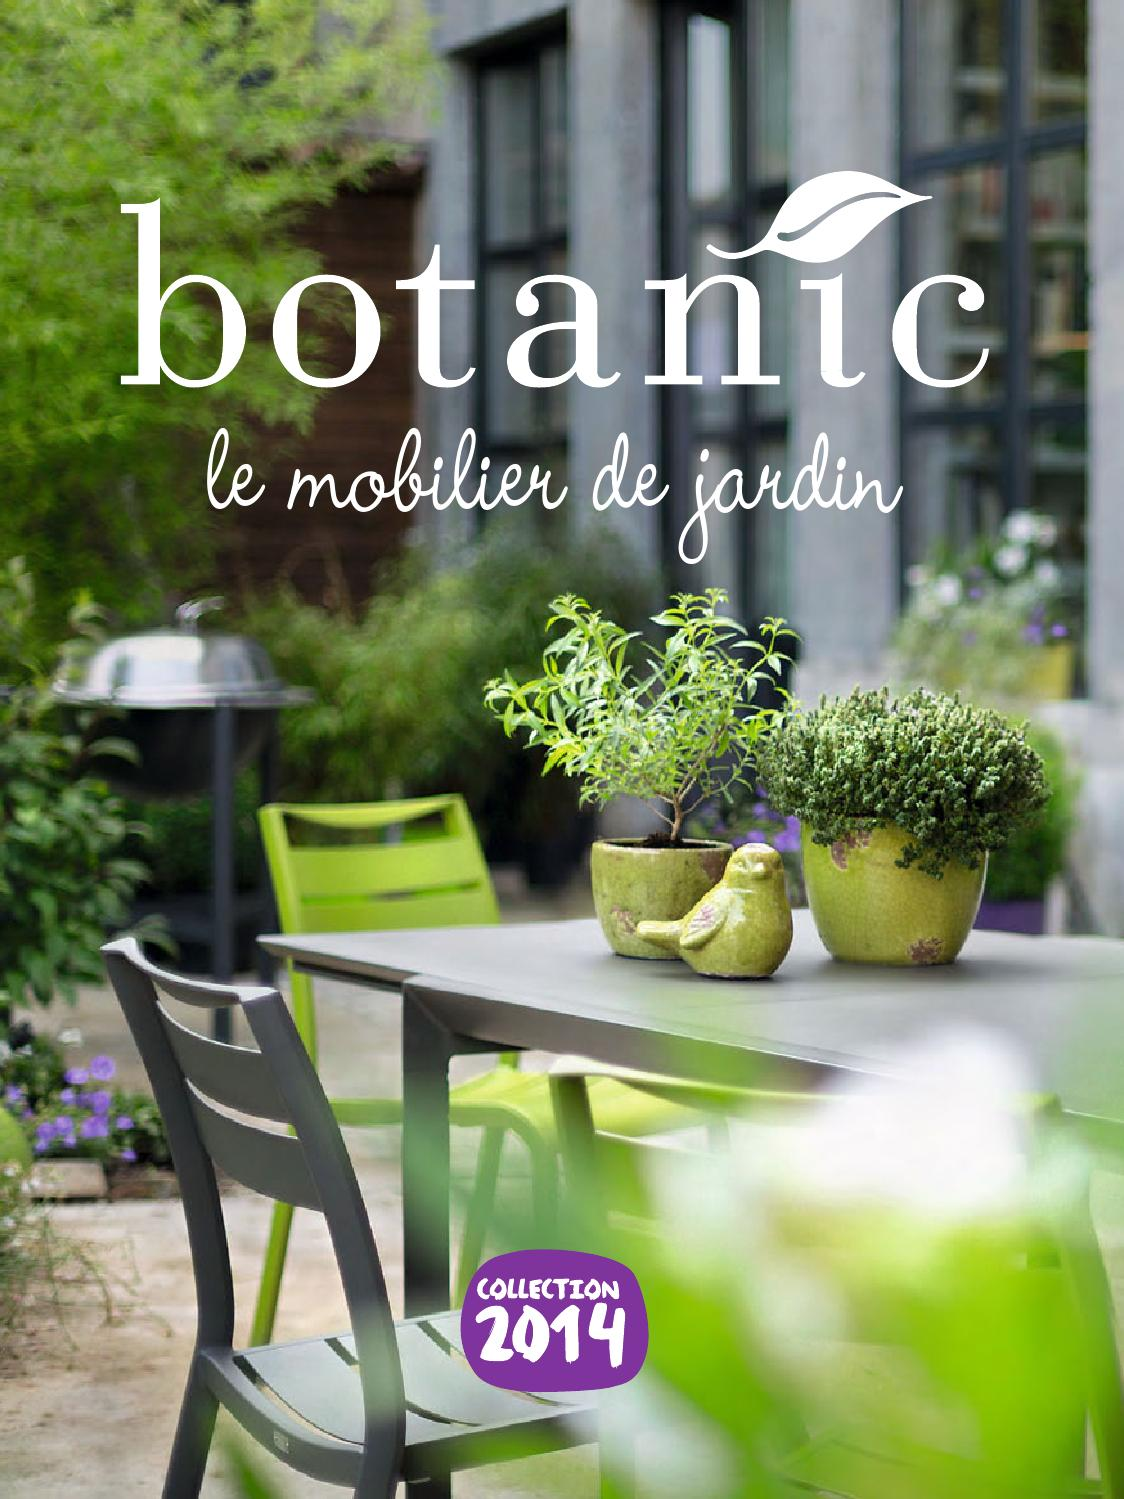 Catalogue Botanic - Le mobilier de jardin 2014 by joe monroe ...